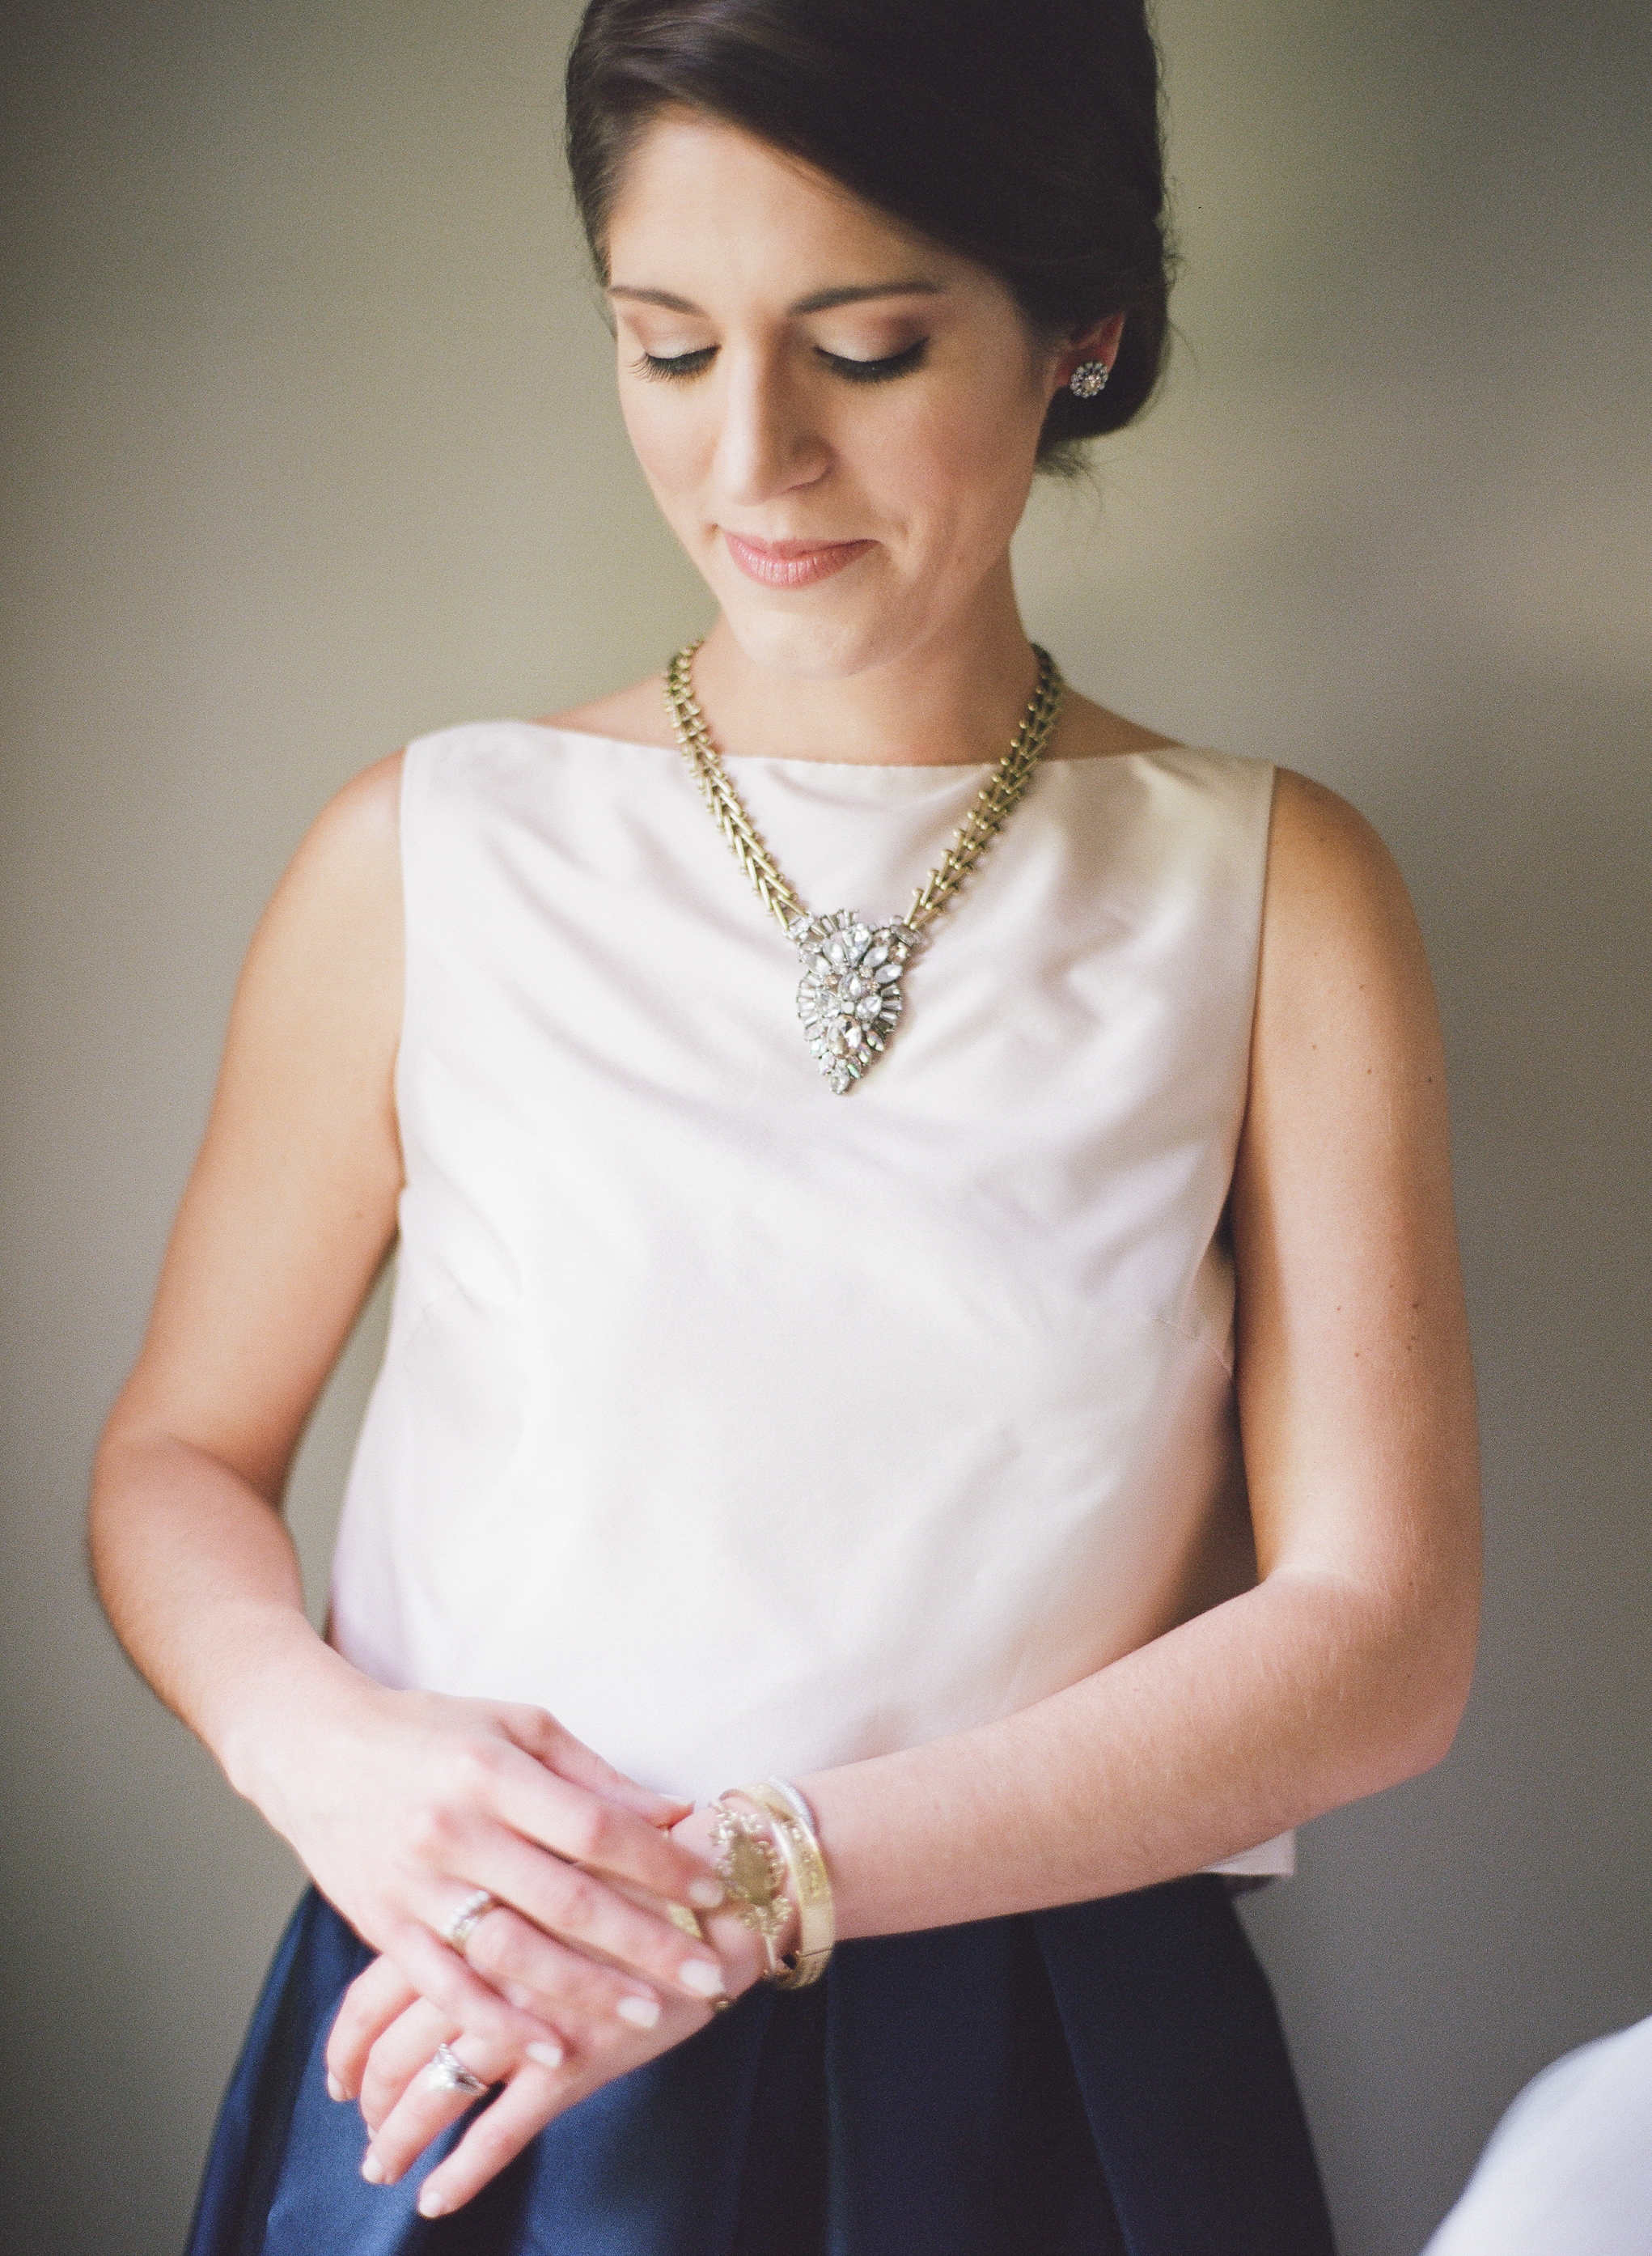 Southern Fete, Southern Wedding, Catherine Guidry Photography, Sara Buteaux, Styled by Michelle Judice